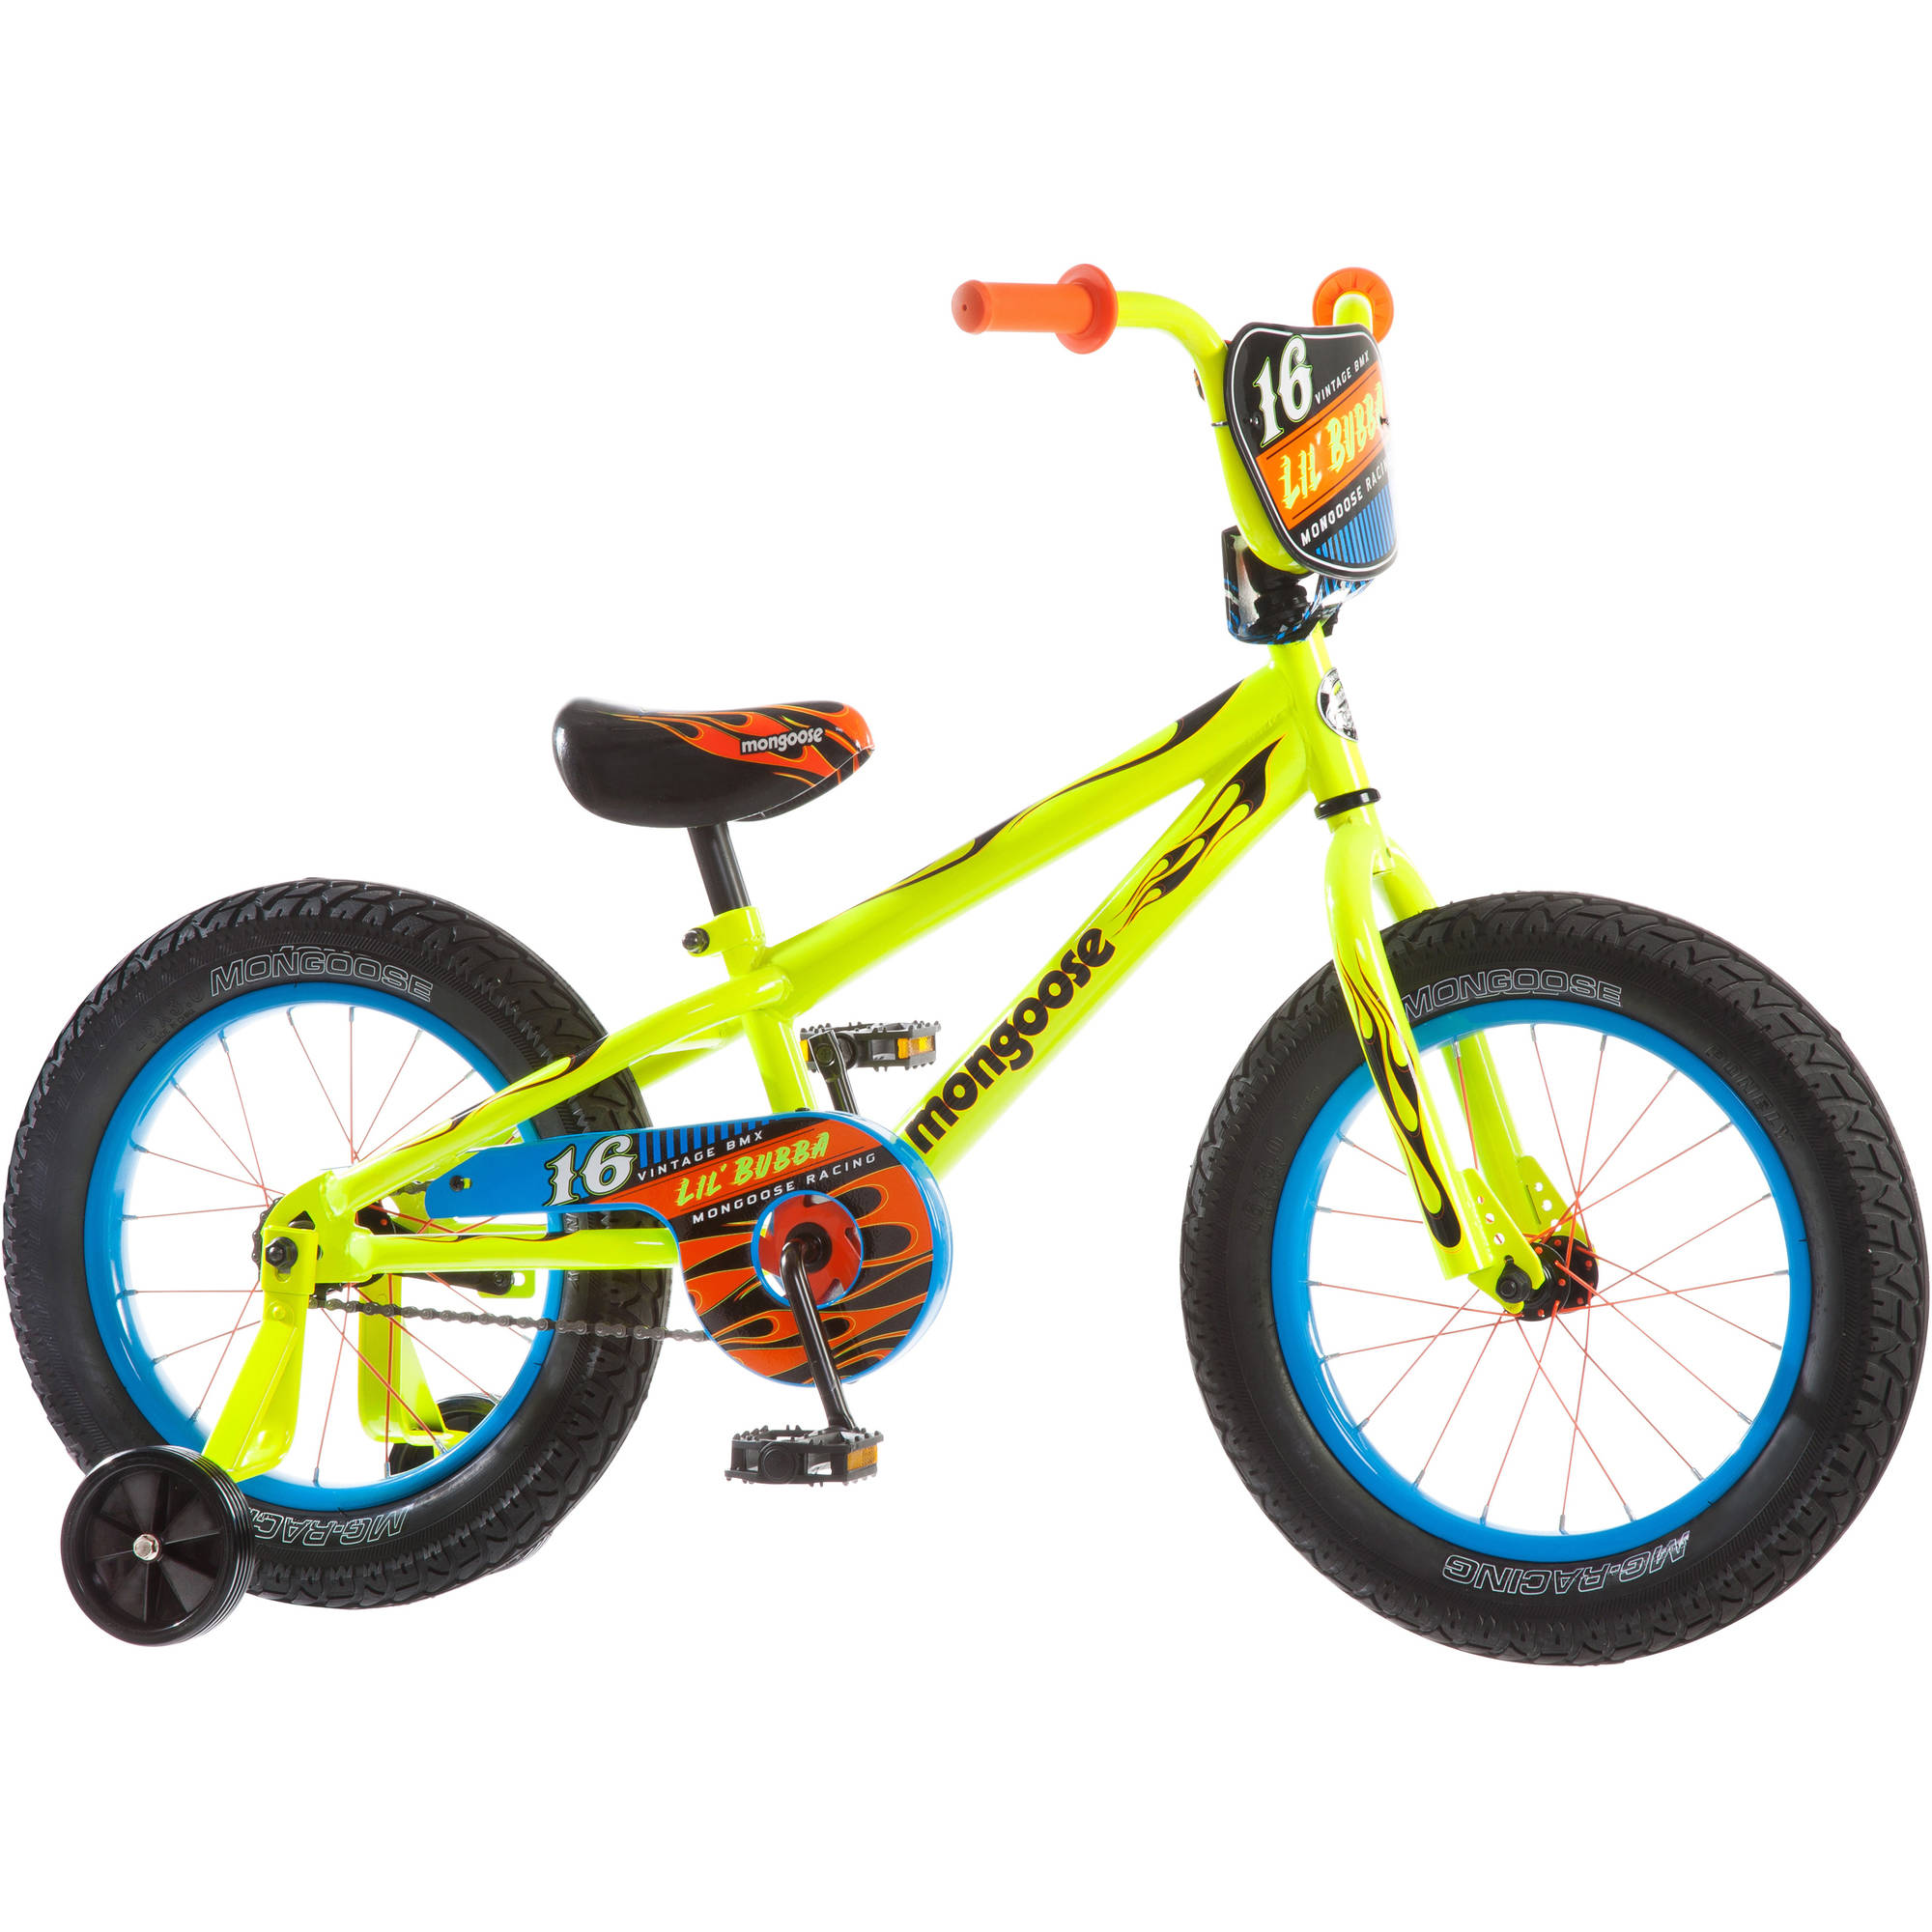 16 Mongoose Lil Bubba Boys Fat Tire Bike Neon Yellow